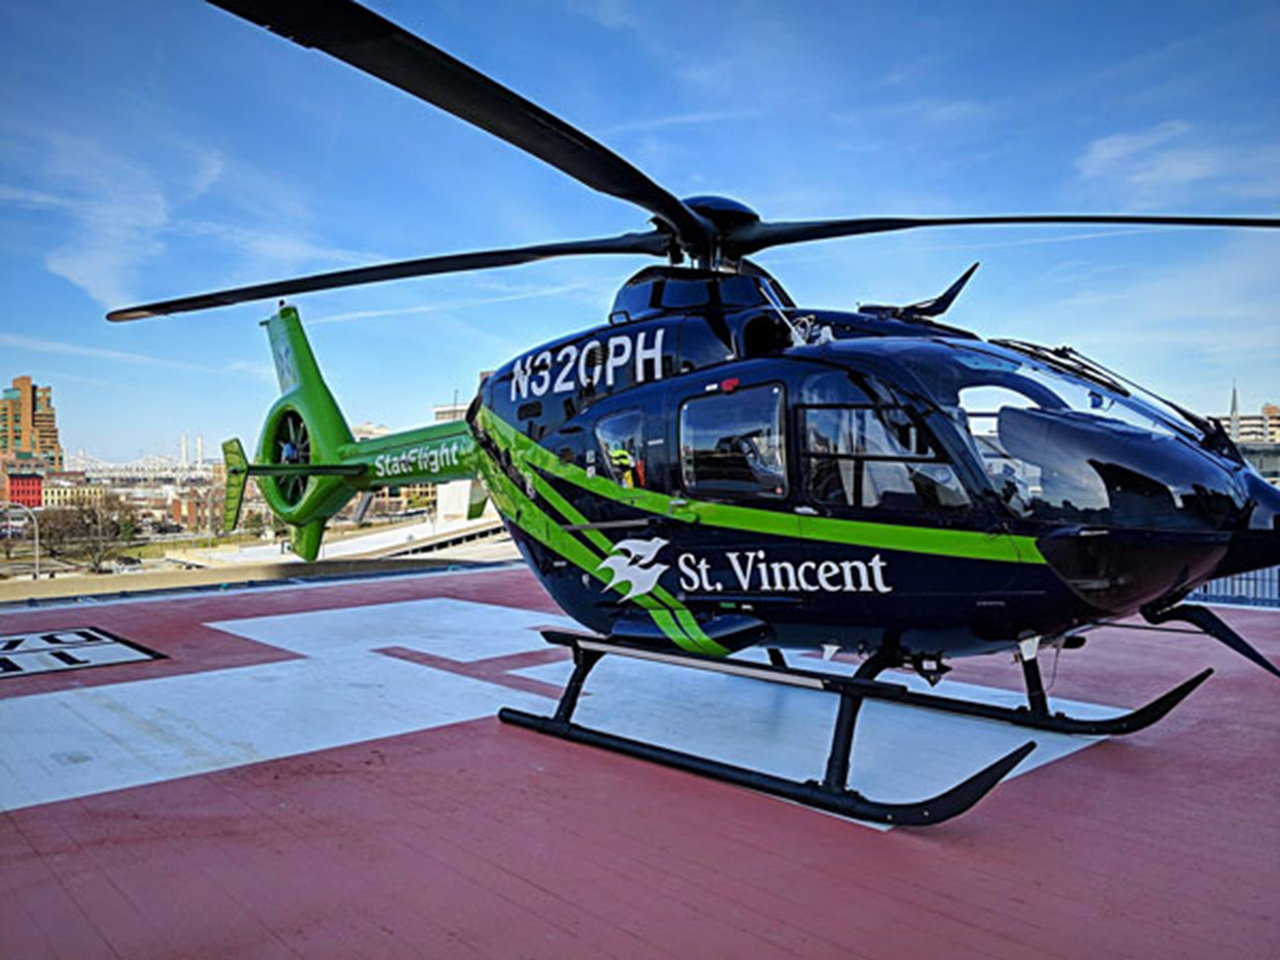 St. Vincent StatFlight Relocating to Huntingburg Airport